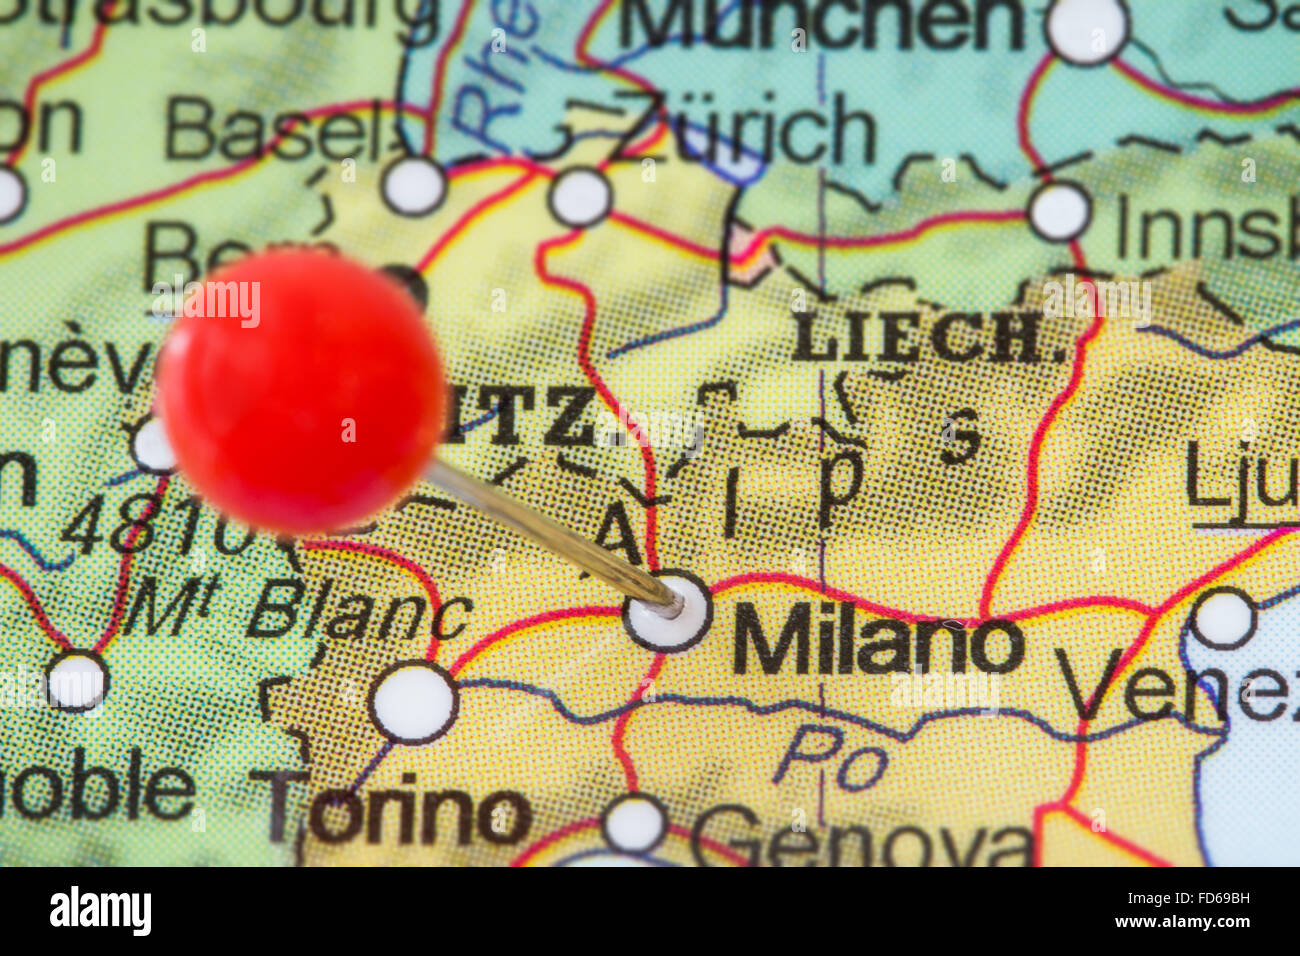 Milan Map Milano Italy Stock Photos & Milan Map Milano Italy Stock ...